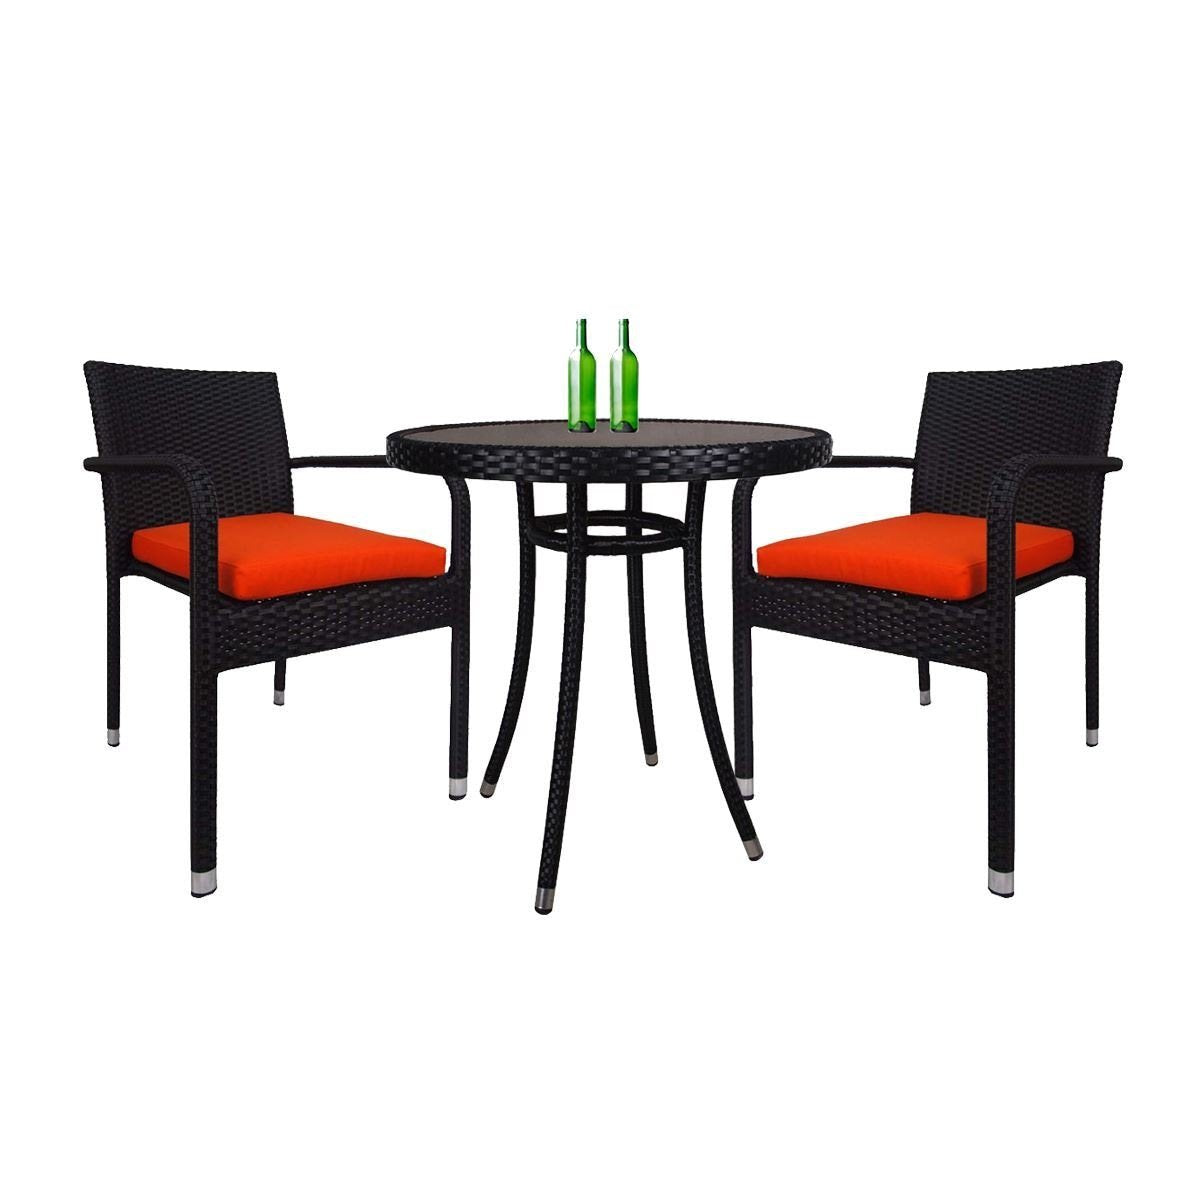 Balcony 2 Chair Bistro Set, Orange Cushion